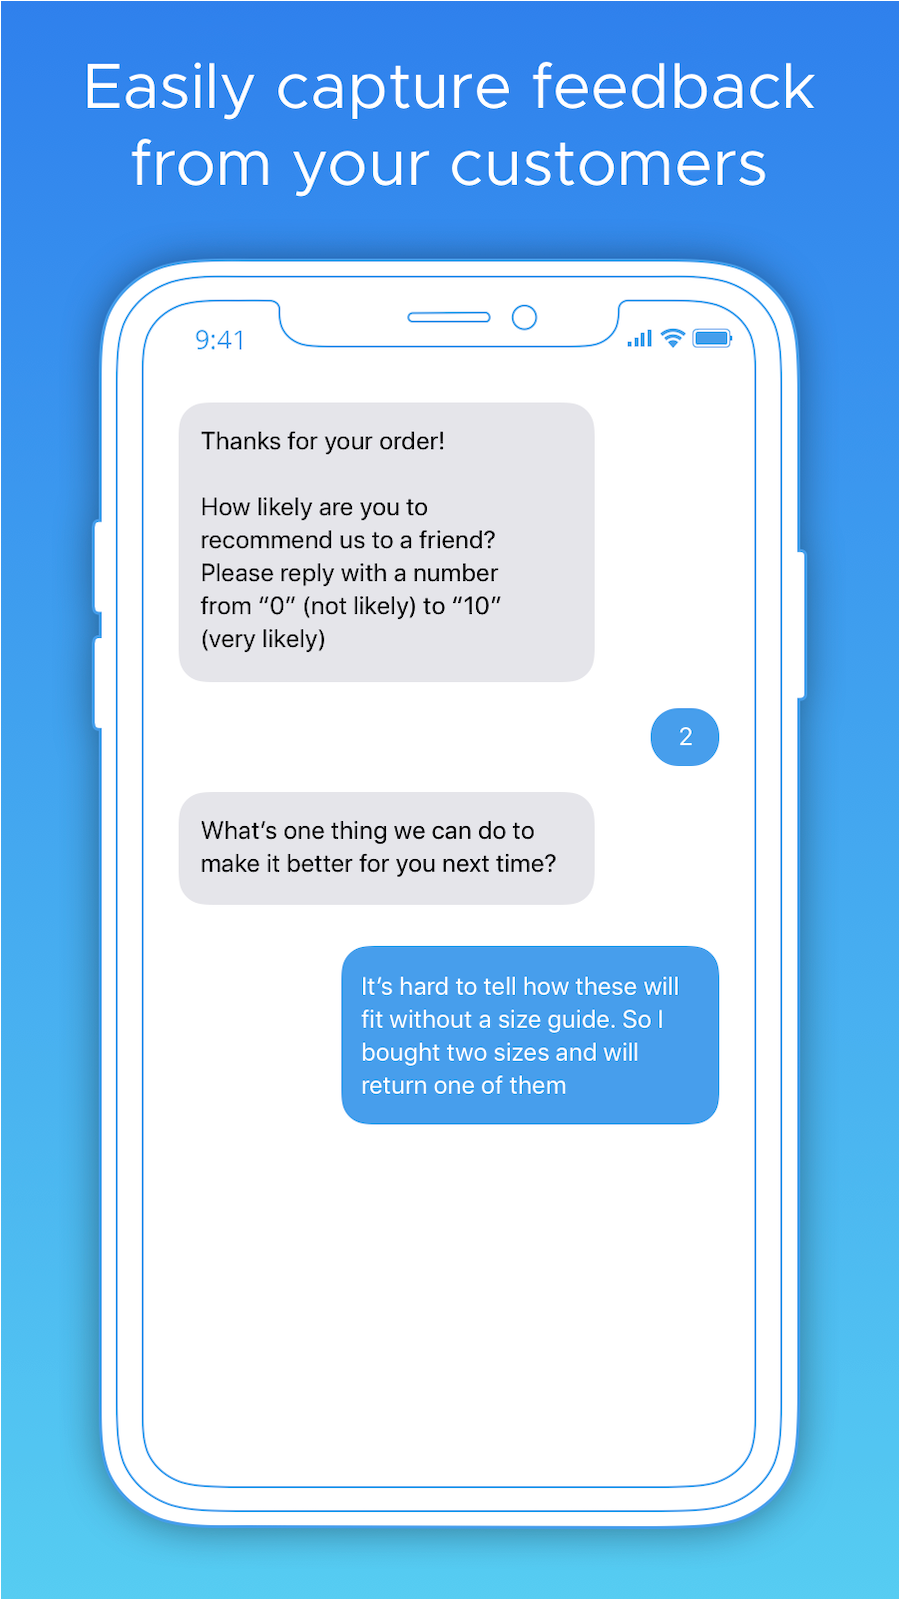 Easily capture feedback from your customers